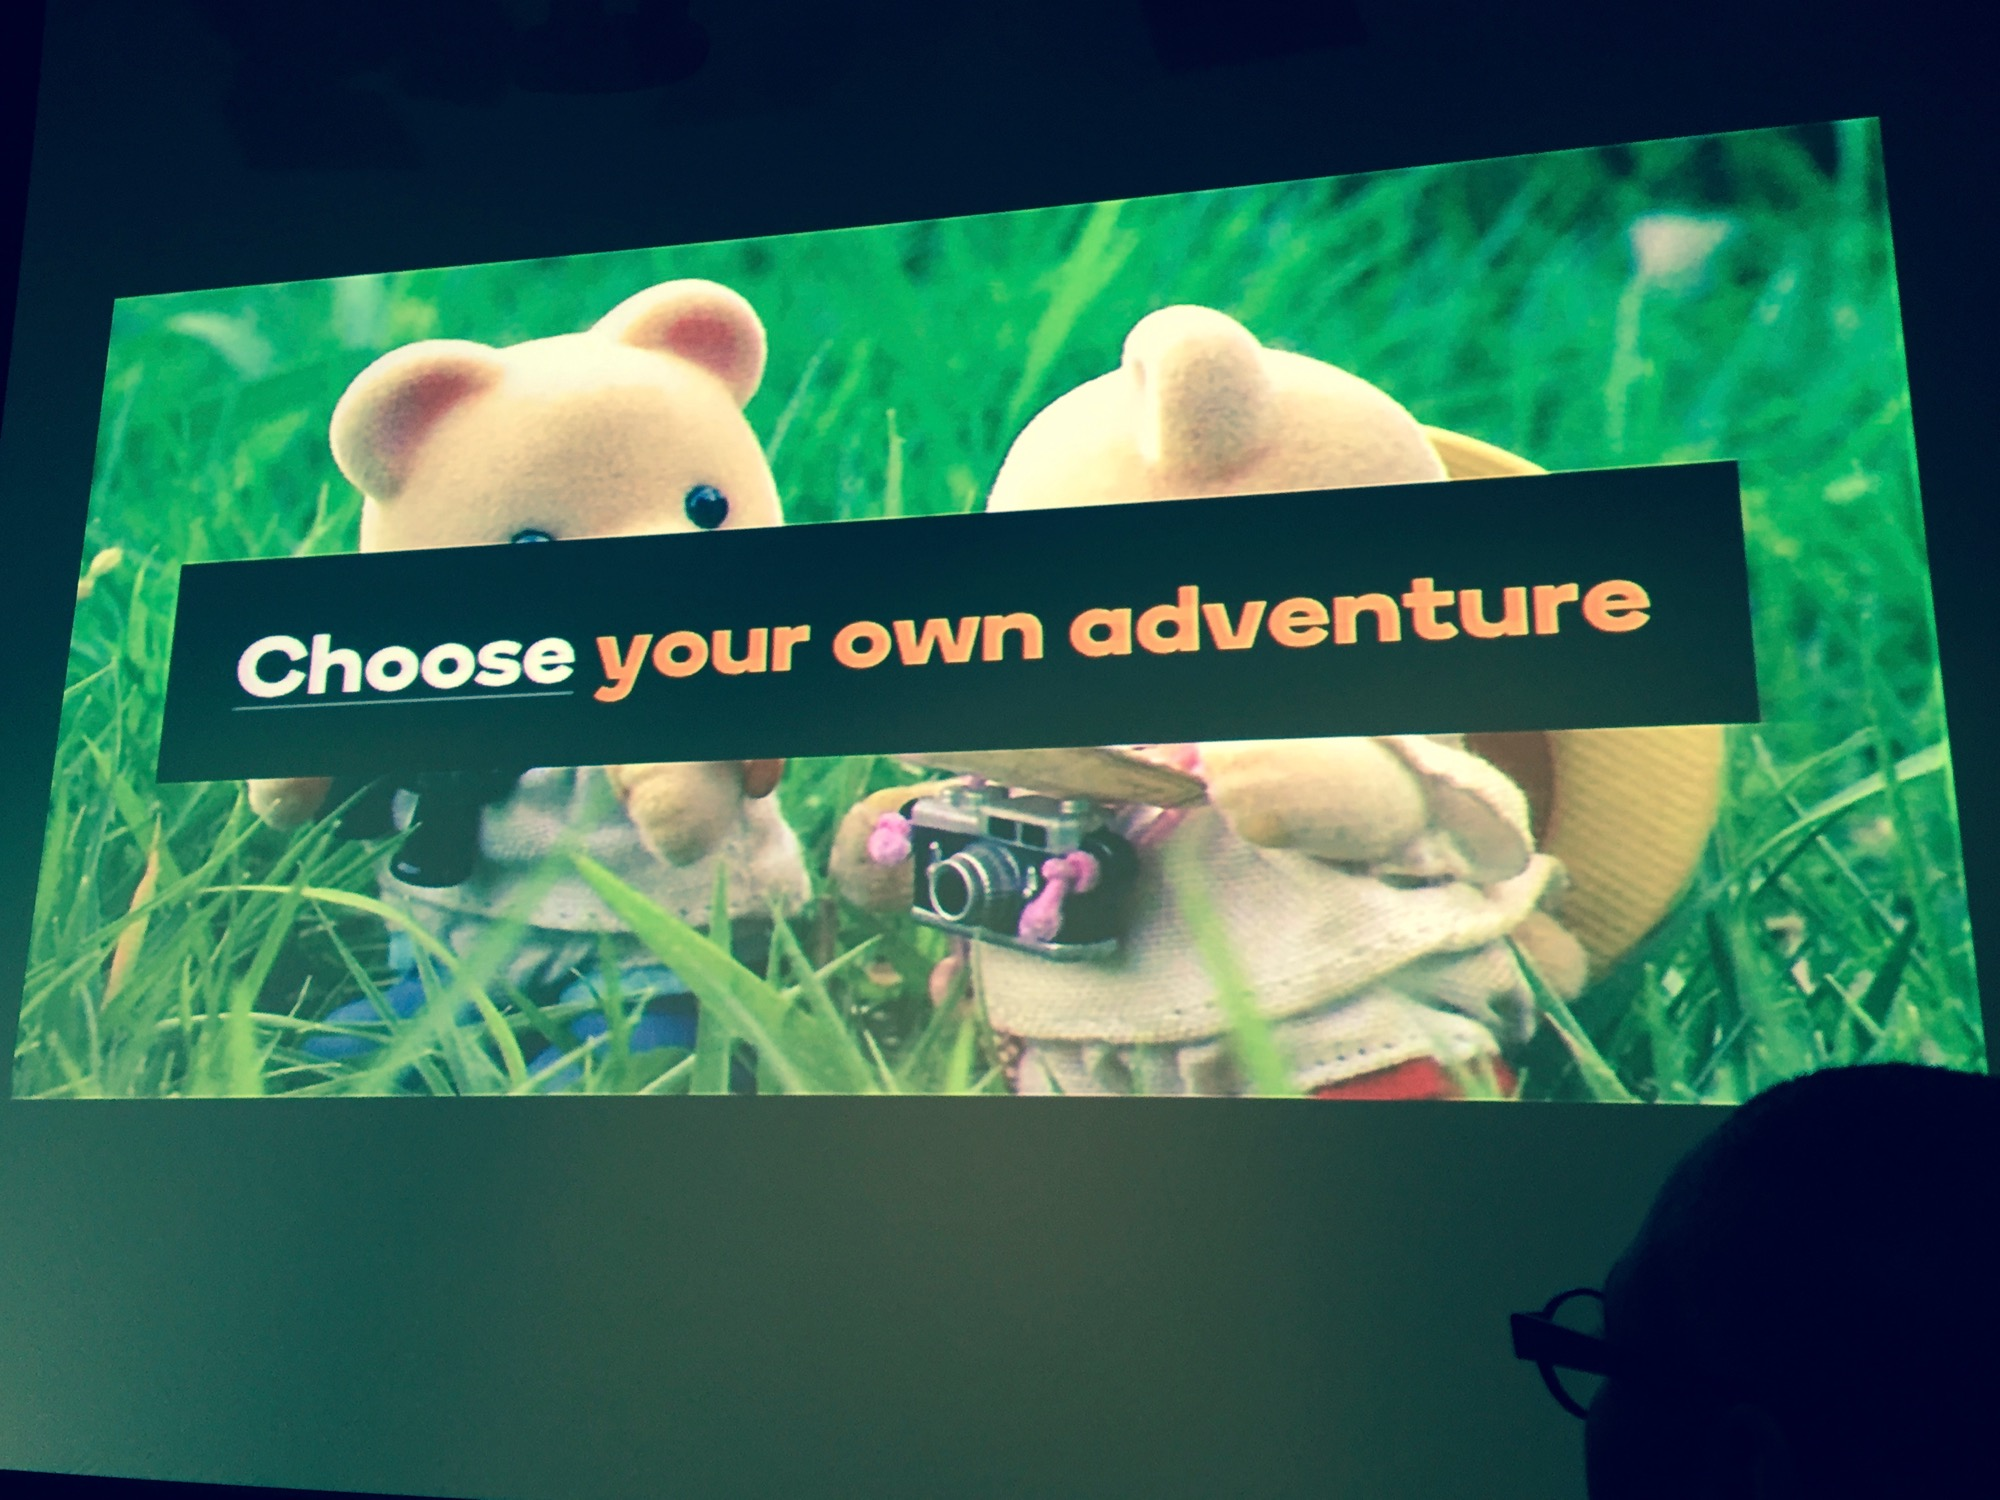 'Choose your own adventure' - Camilla Grey presentation